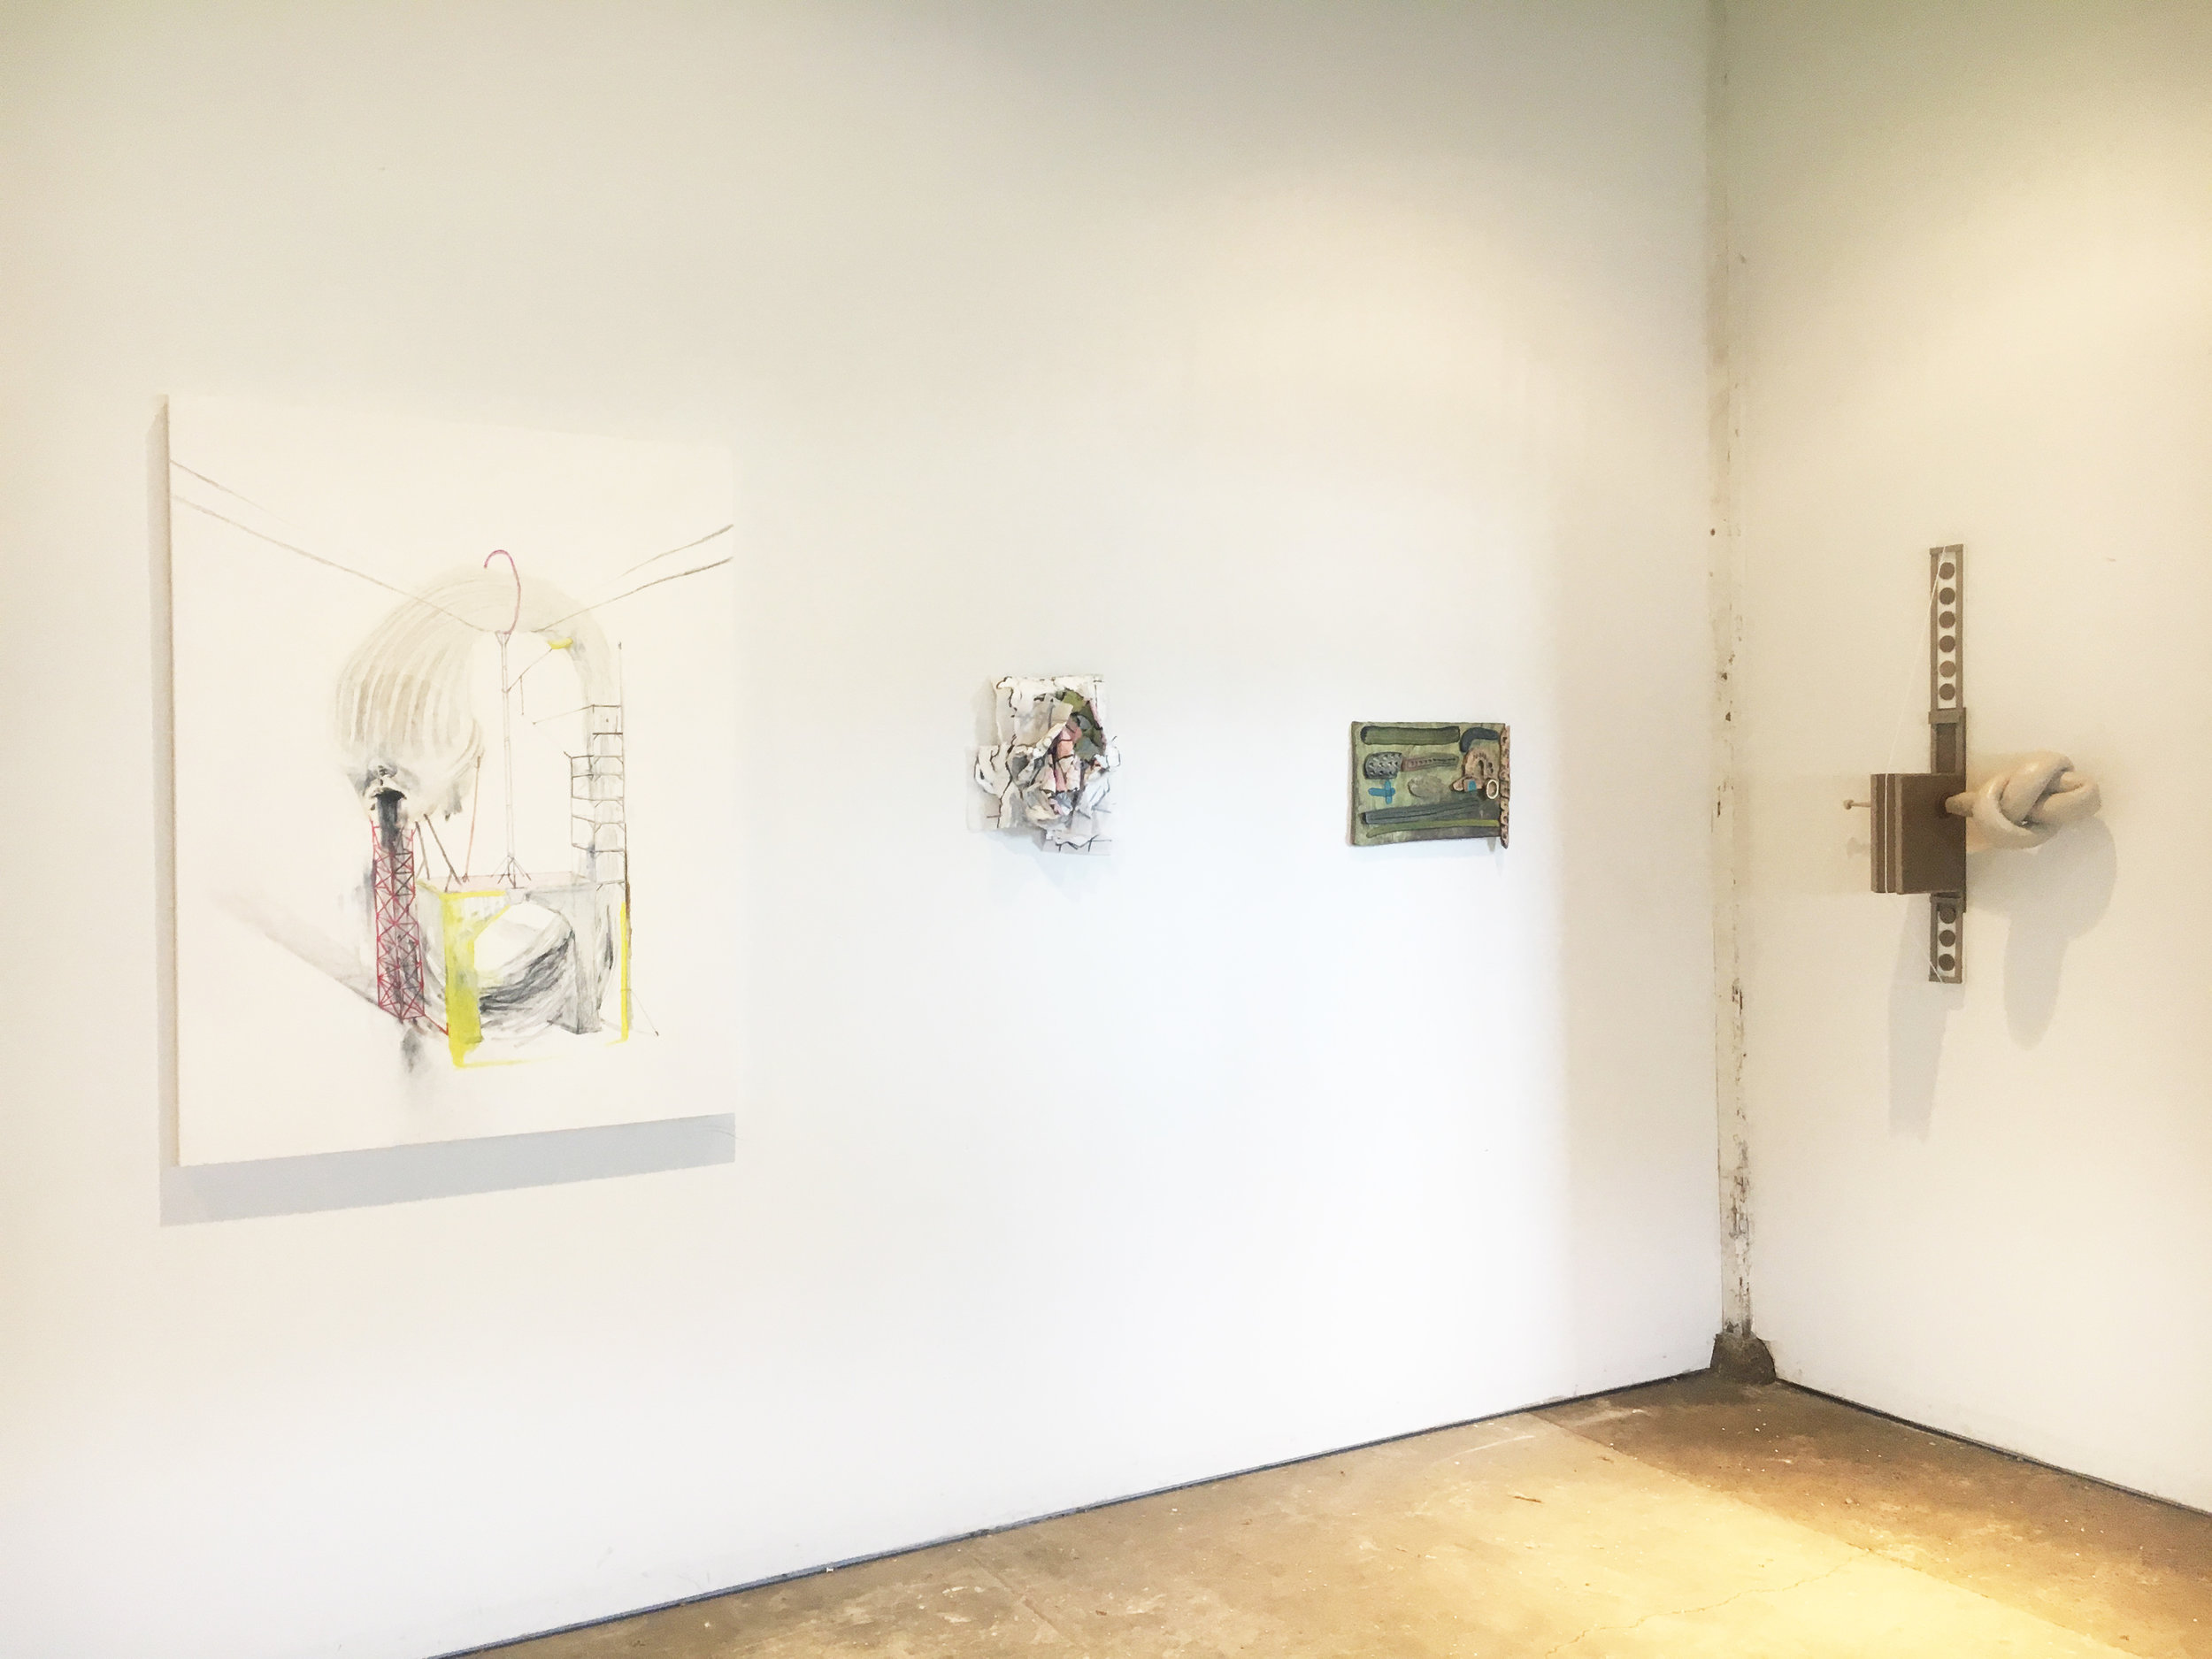 "(From Left to Right) Lydia Goldbeck, ""Untitled,""2018, Stephanie Sherwood, ""Convulse 3"", 2018, Luke Armitstead, ""Landscape Collage,"" 2016, Richelle Soper, ""50/50"","" 2018"